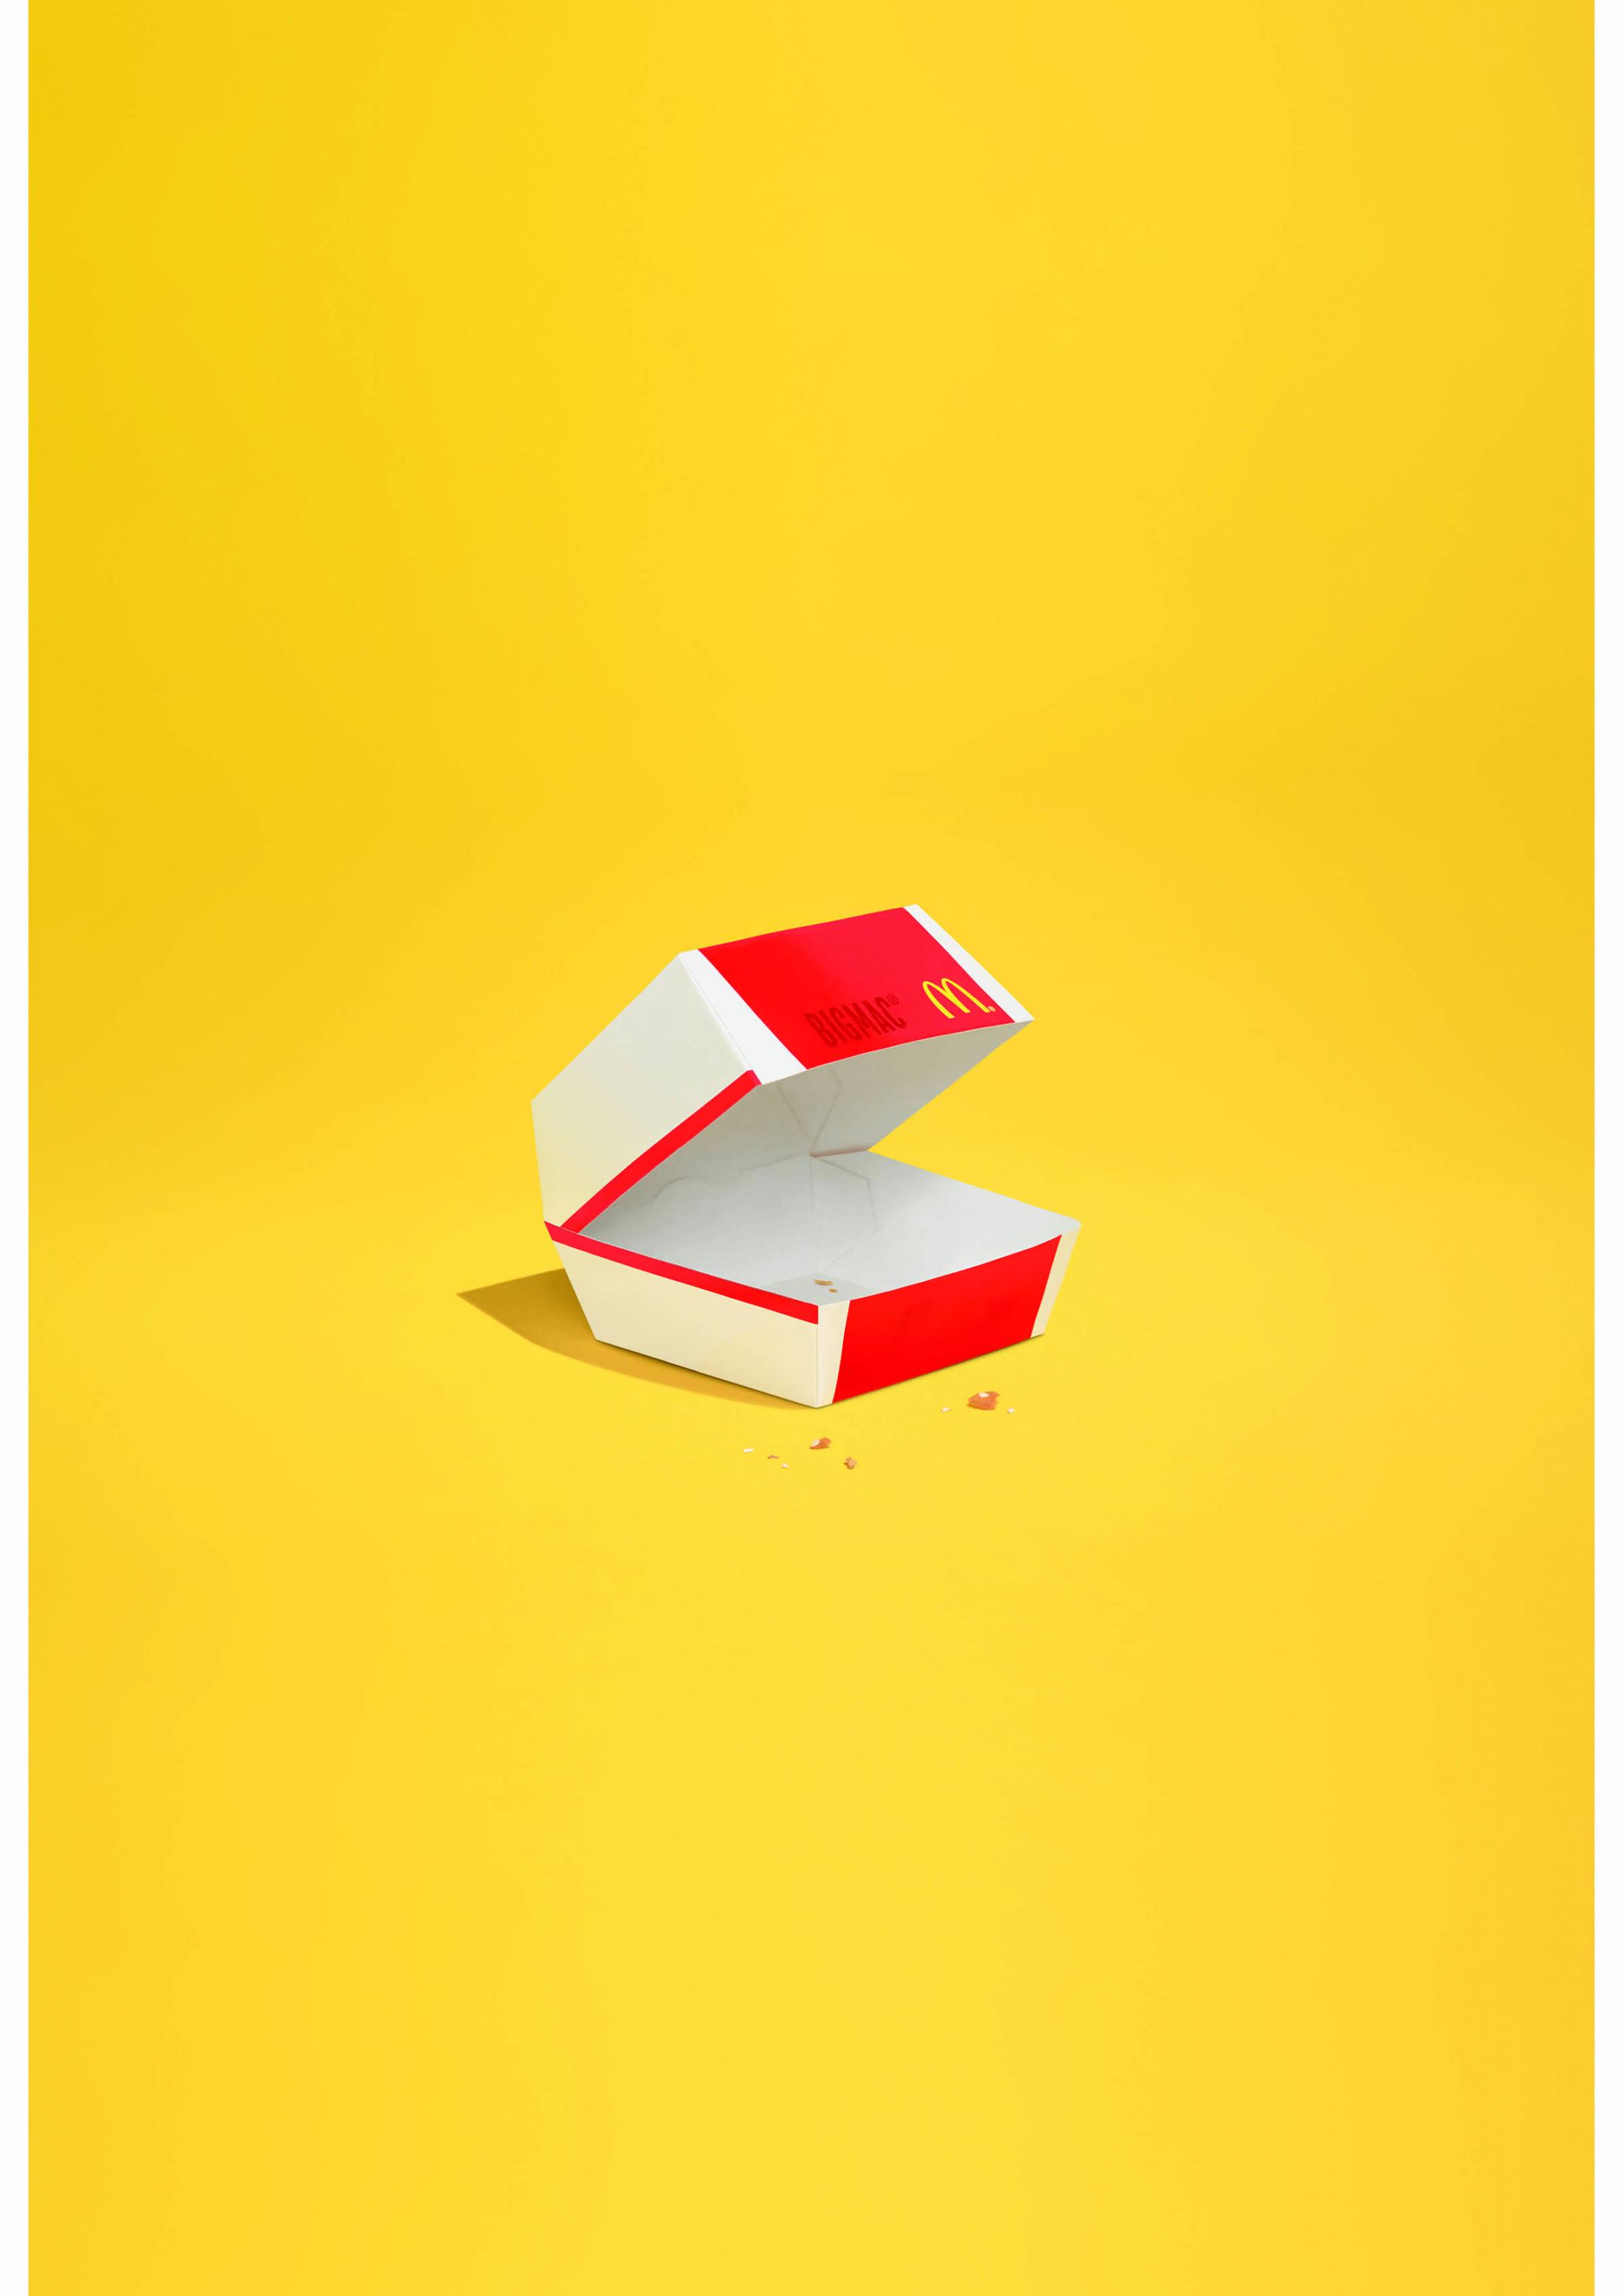 McDonald's Print Ad - Big Mac